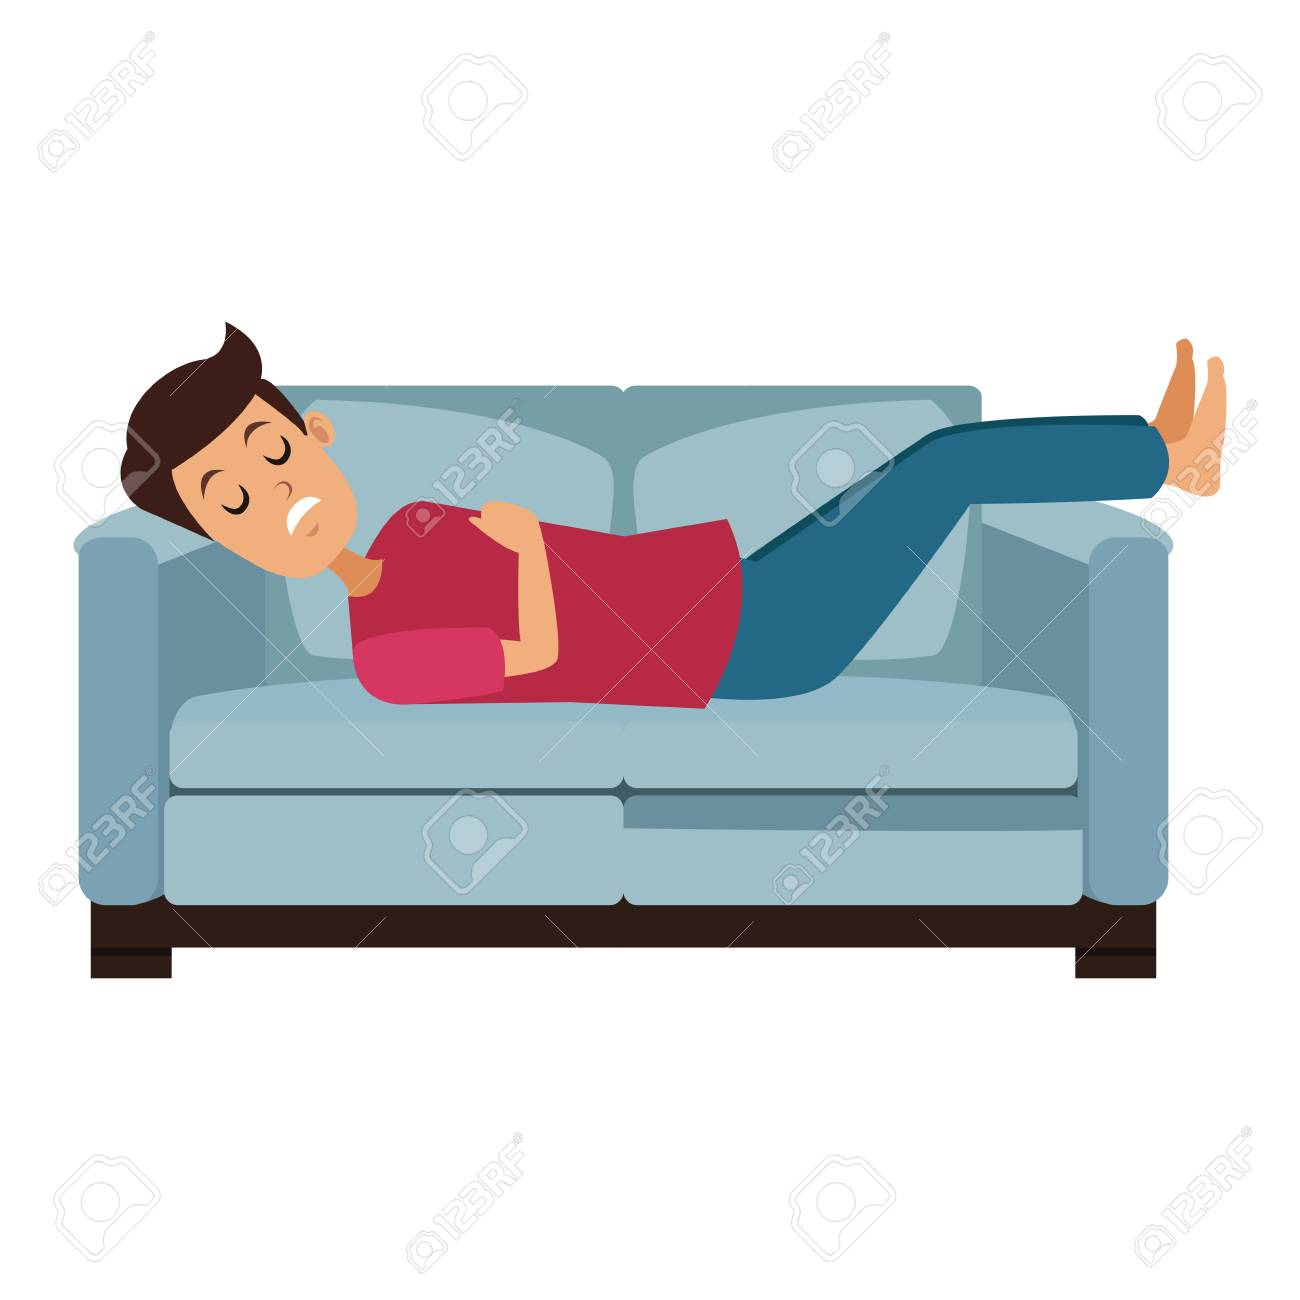 Man Sleeping In Sofa Vector Illustration Graphic Design Royalty Free